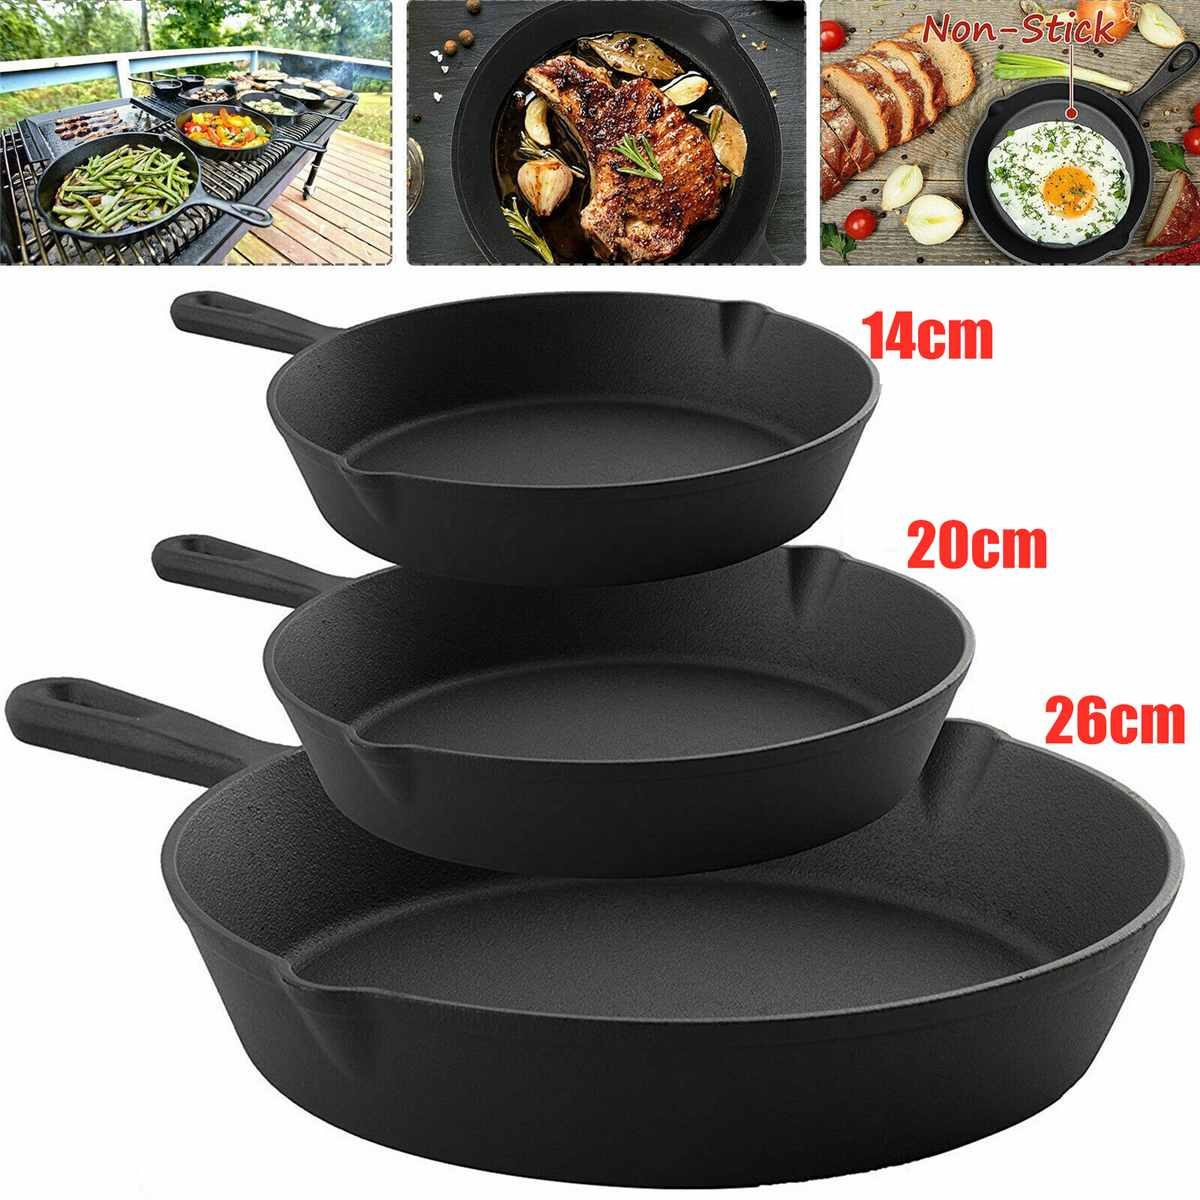 3Pcs Frying Pan Non-Stick Grill Skillet Set Frypan Cast Iron Griddle Cooking BBQ